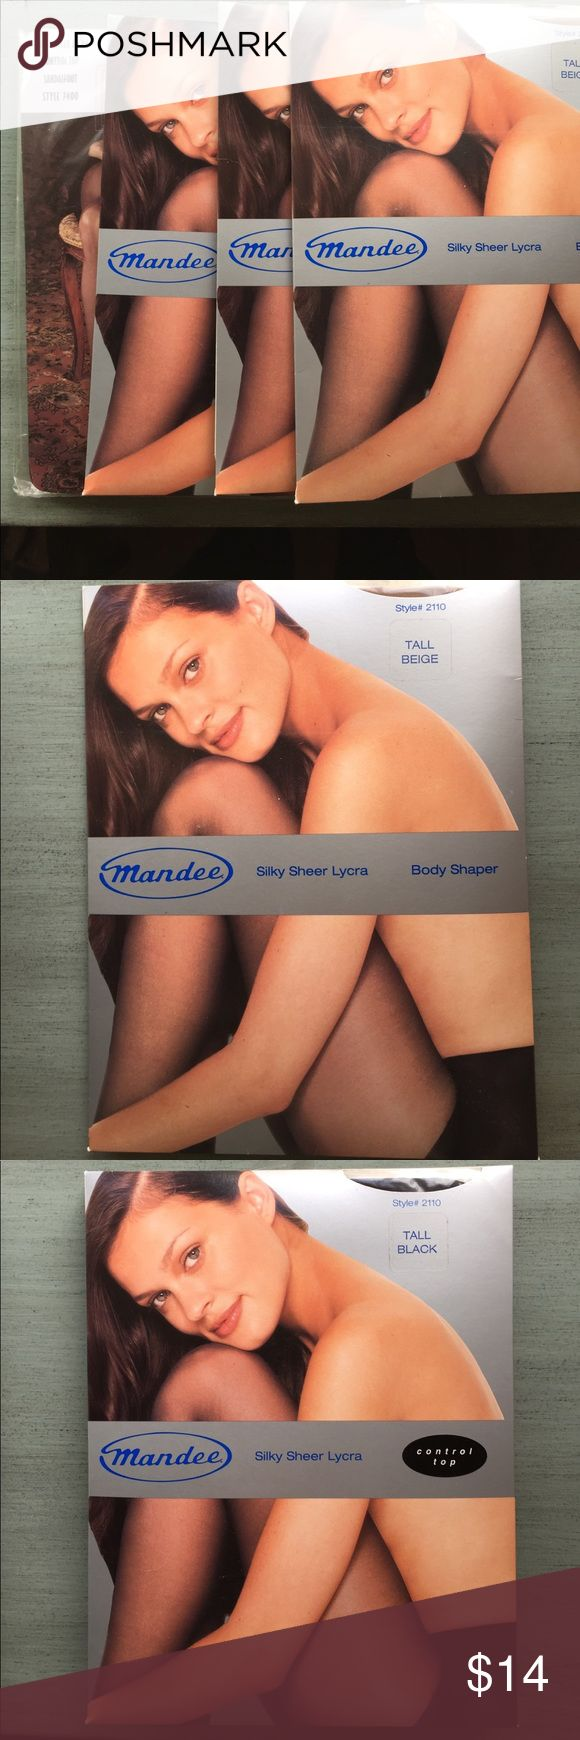 4 Pairs Tall Size Pantyhose 1 Pair Tall Beige Body Shaper Silky Sheer Lycra. 2 Pairs Tall Black Control Top Silky Sheer Lycra. 1 Pair Tall Taupe Control Top Sandalfoot Silky Sheer Lycra.  Brand New in Package. Various Accessories Hosiery & Socks